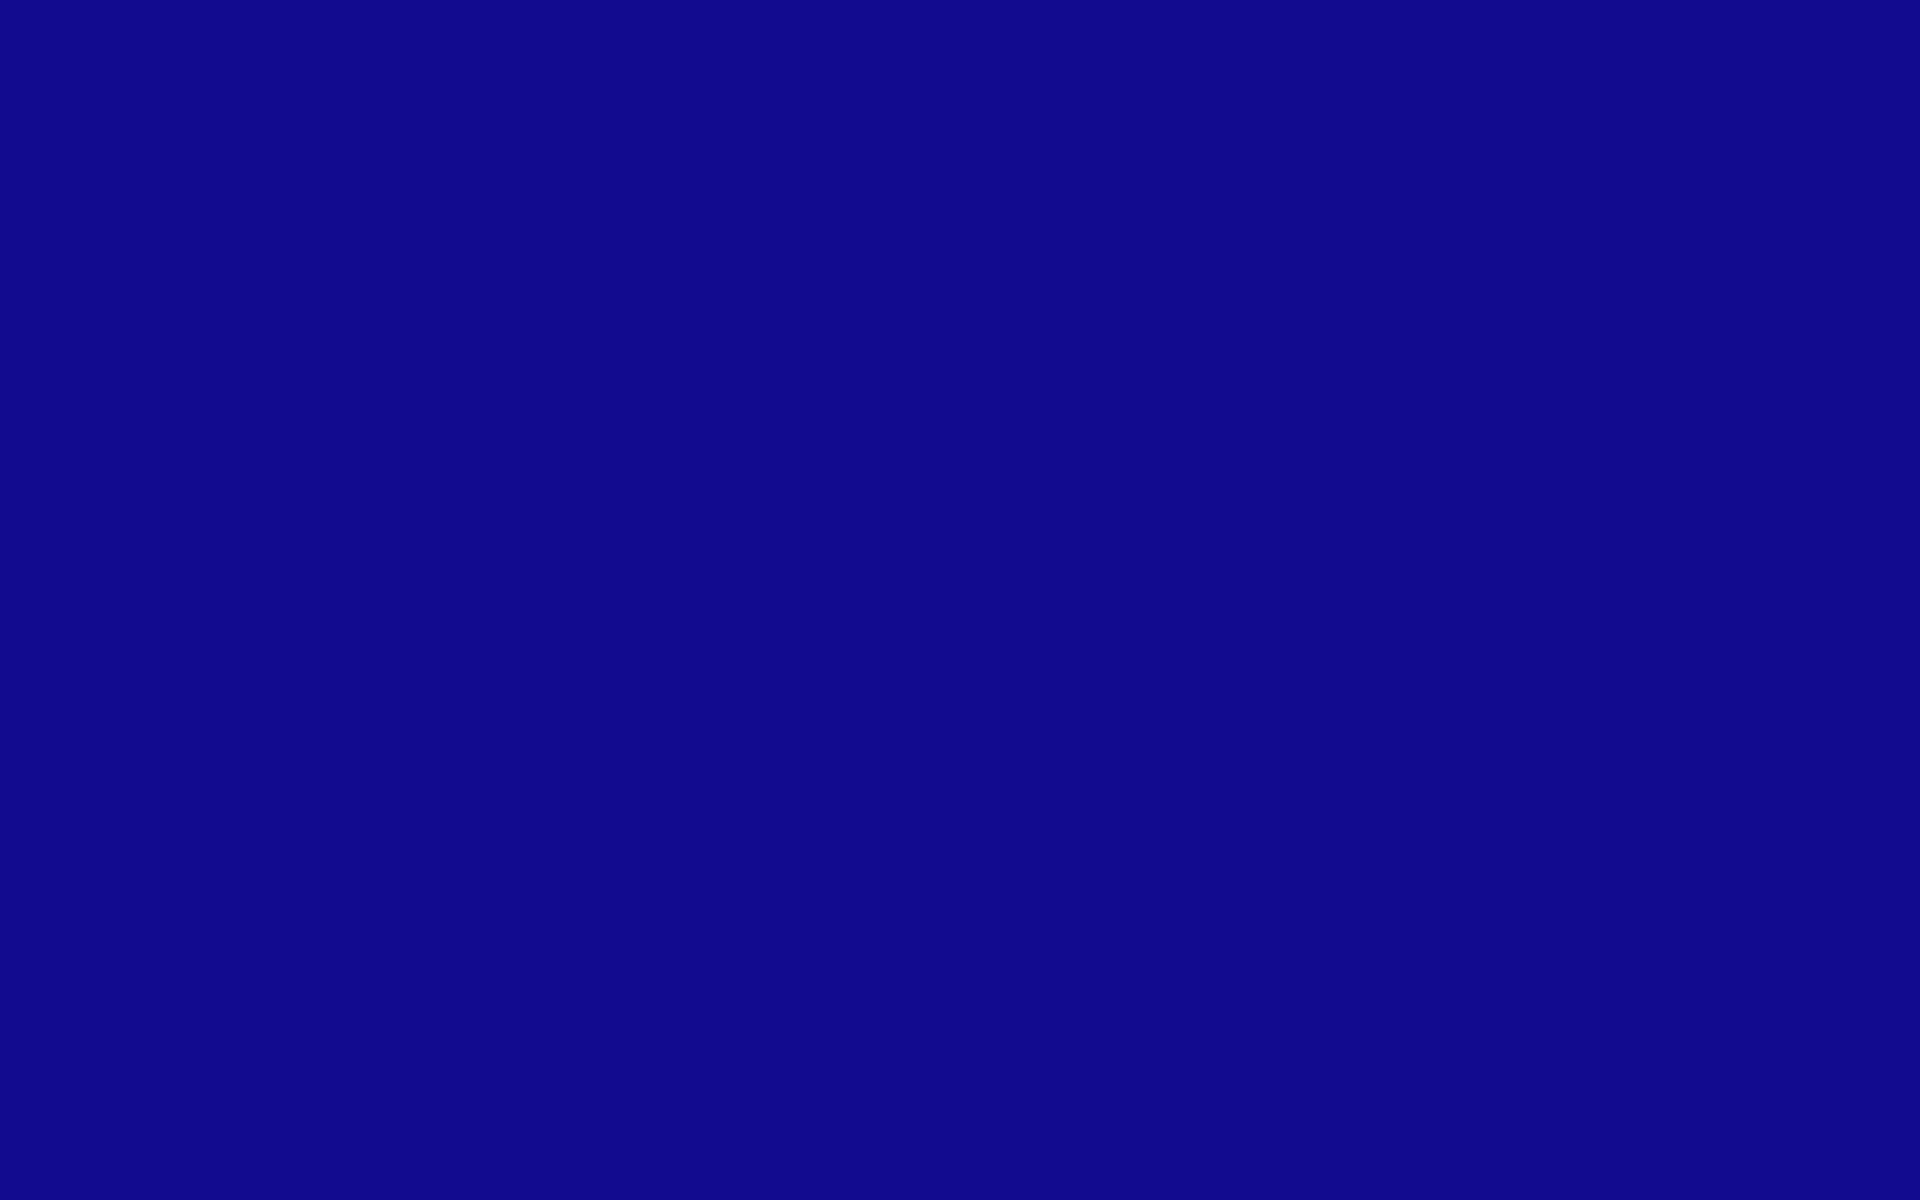 1920x1200 Ultramarine Solid Color Background 1920x1200